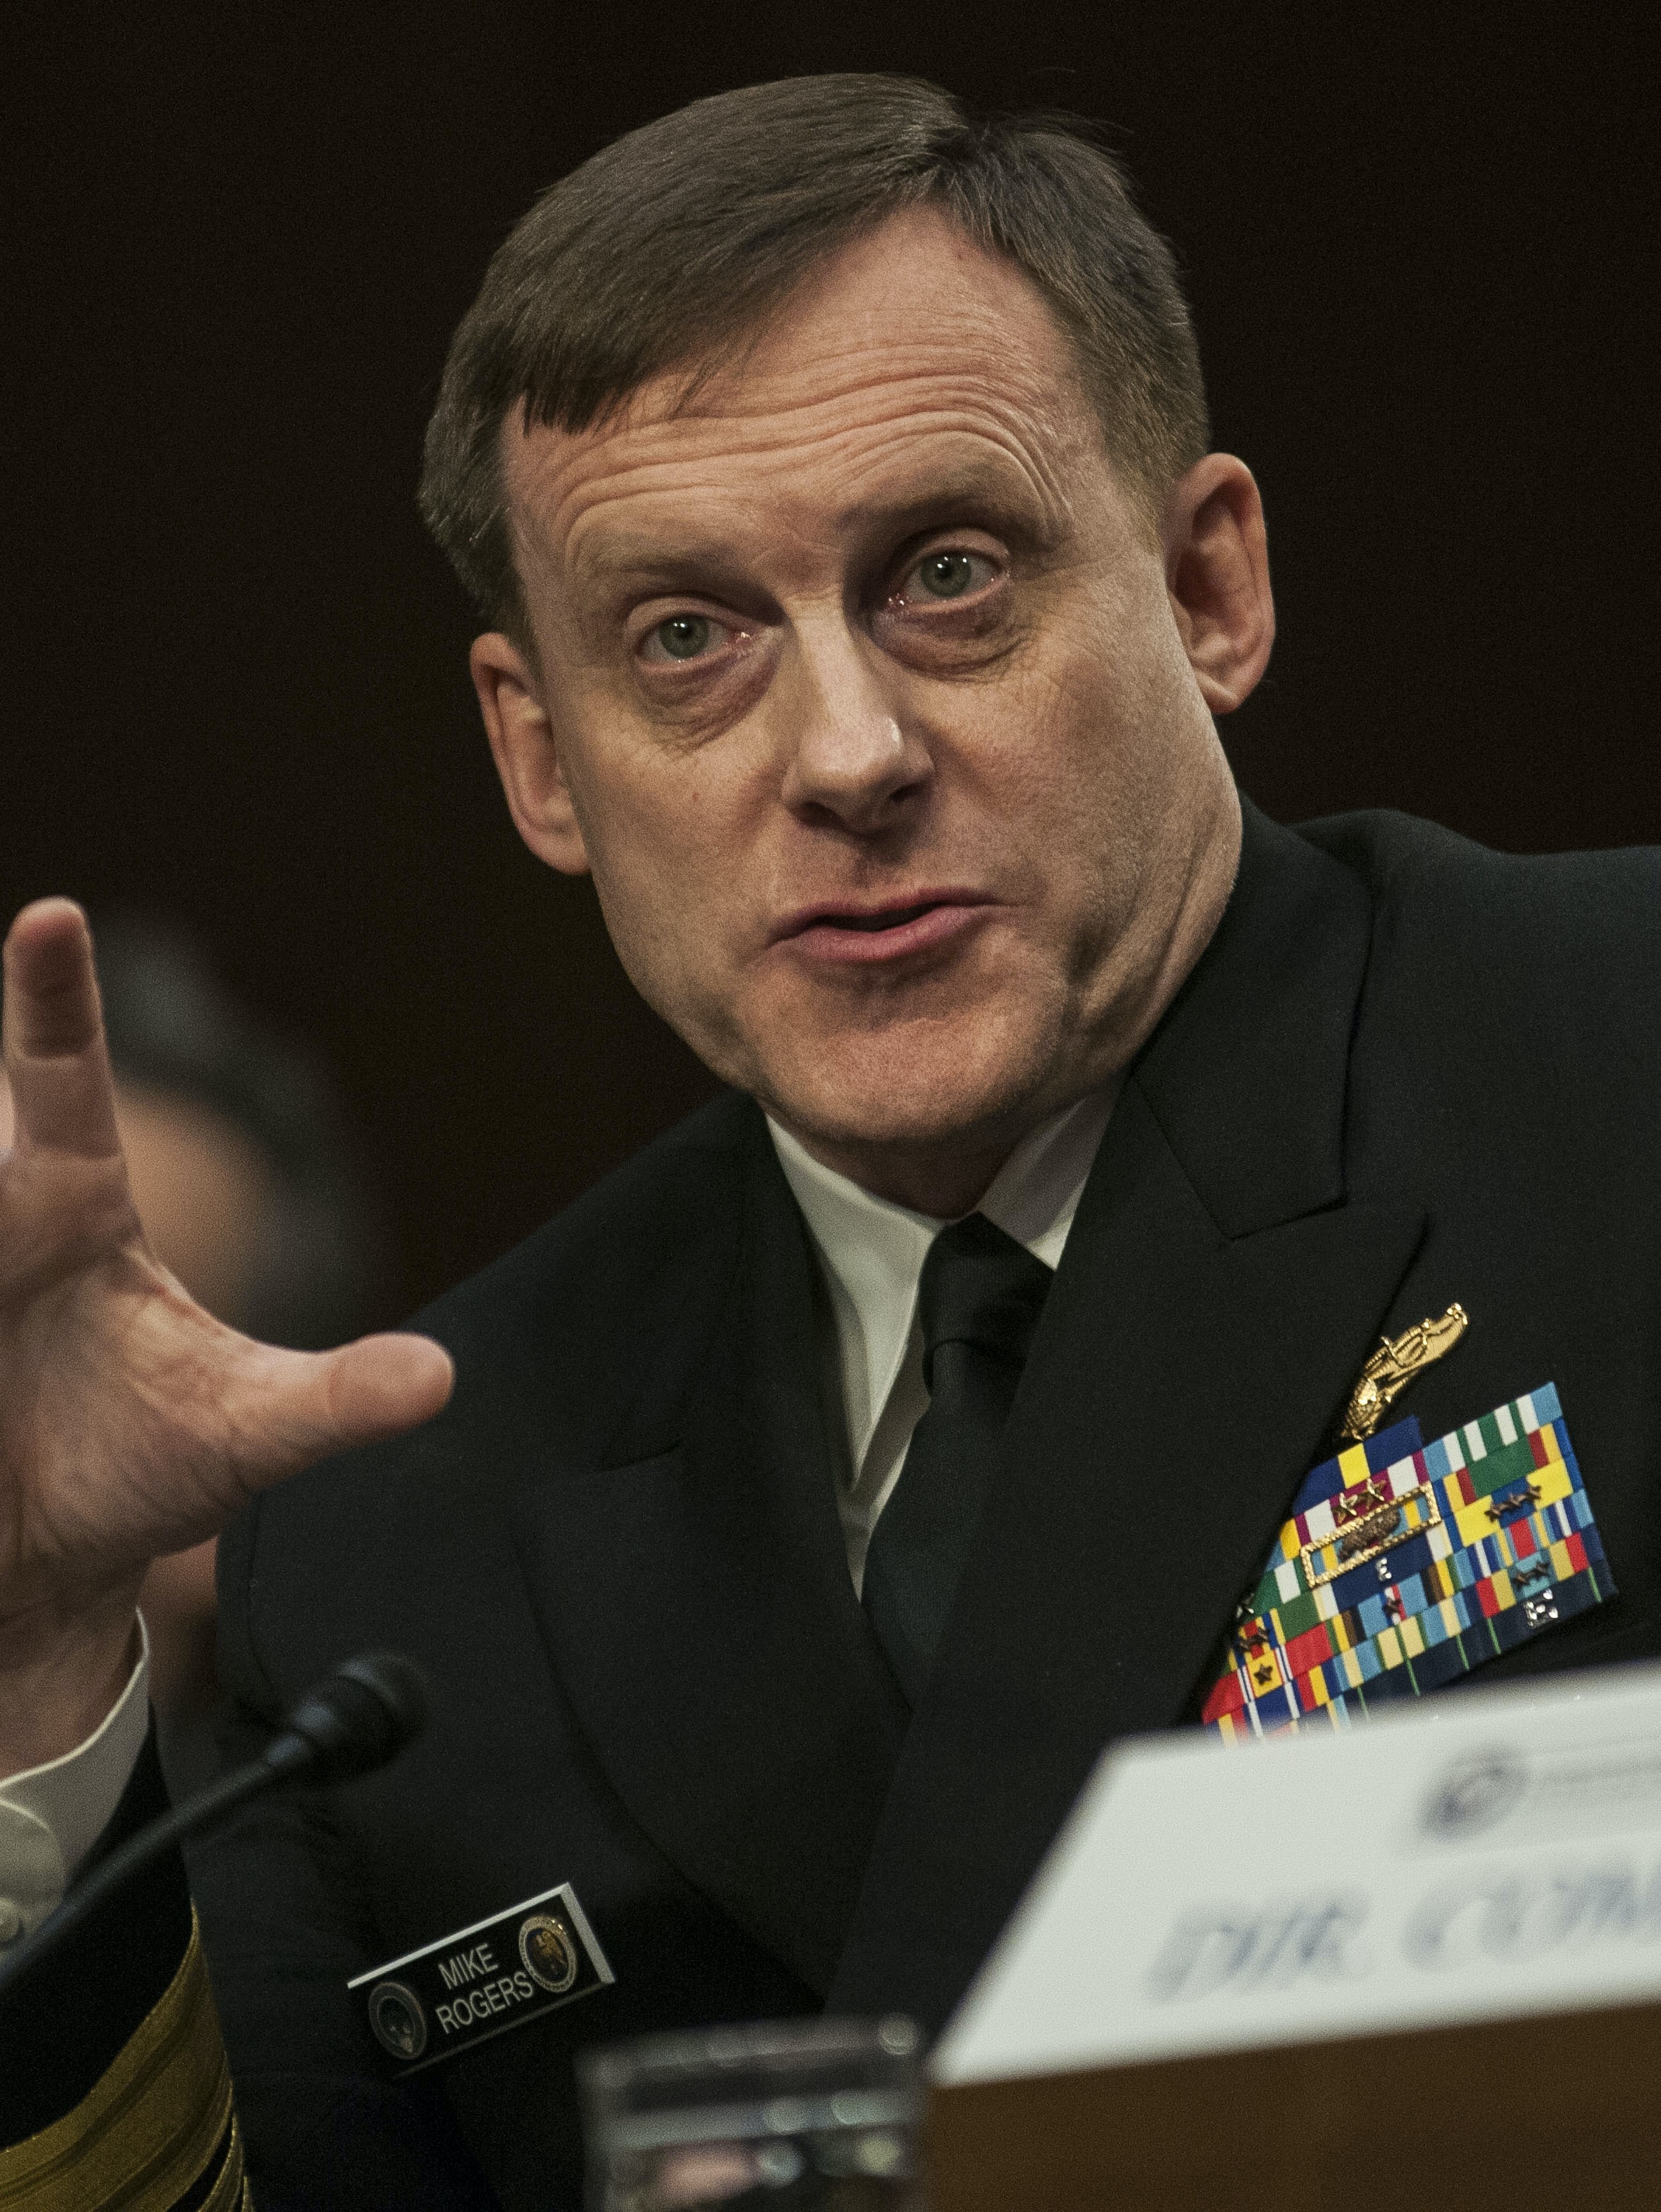 WASHINGTON, DC - FEBRUARY 9:     National Security Agency Director Adm. Michael Rogers testifies before the Senate (Select) Intelligence Committee at the Hart Senate Building on February 9, 2016 in Washington, D.C.  The committee met to hear testimony about worldwide threats to America and its allies.  (Photo by Gabriella Demczuk/Getty Images)